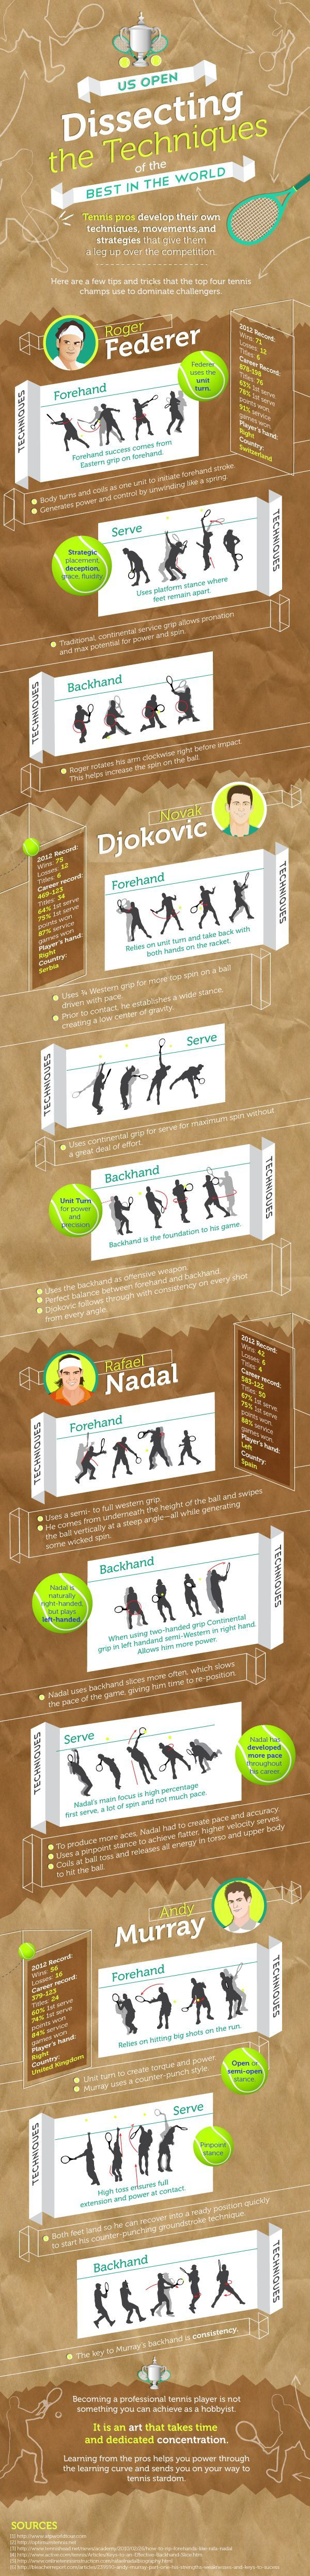 The tennis techniques of the top 4 tennis players: Novak Djokovic, Roger Federer, Rafael Nadal, and Andy Murray   Find more tennis ideas, quotes, tips, and lessons at #lorisgolfshoppe